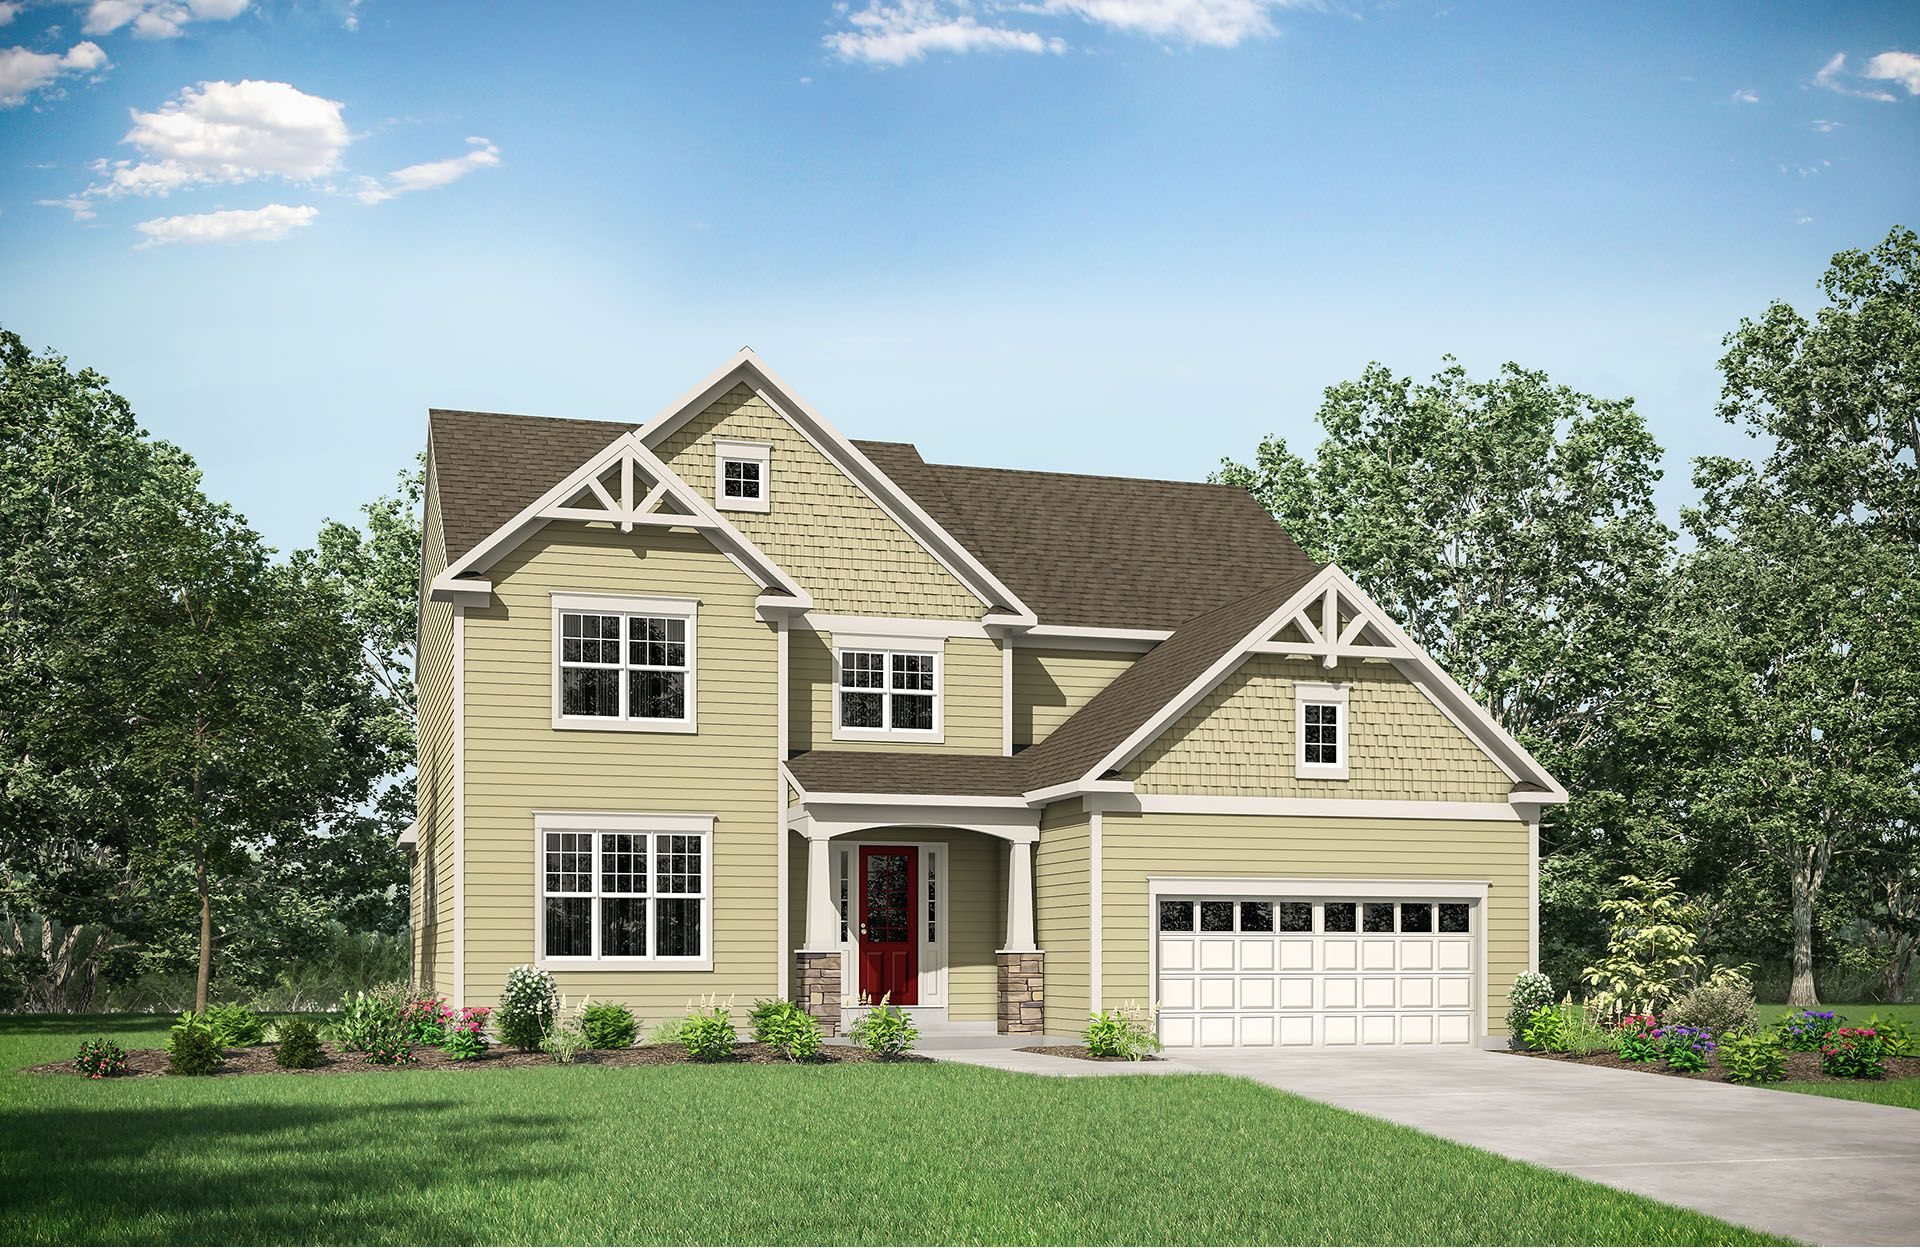 Single Family for Sale at Estates At Rocky Pen - Rowan 85 Edgewater Drive Falmouth, Virginia 22405 United States